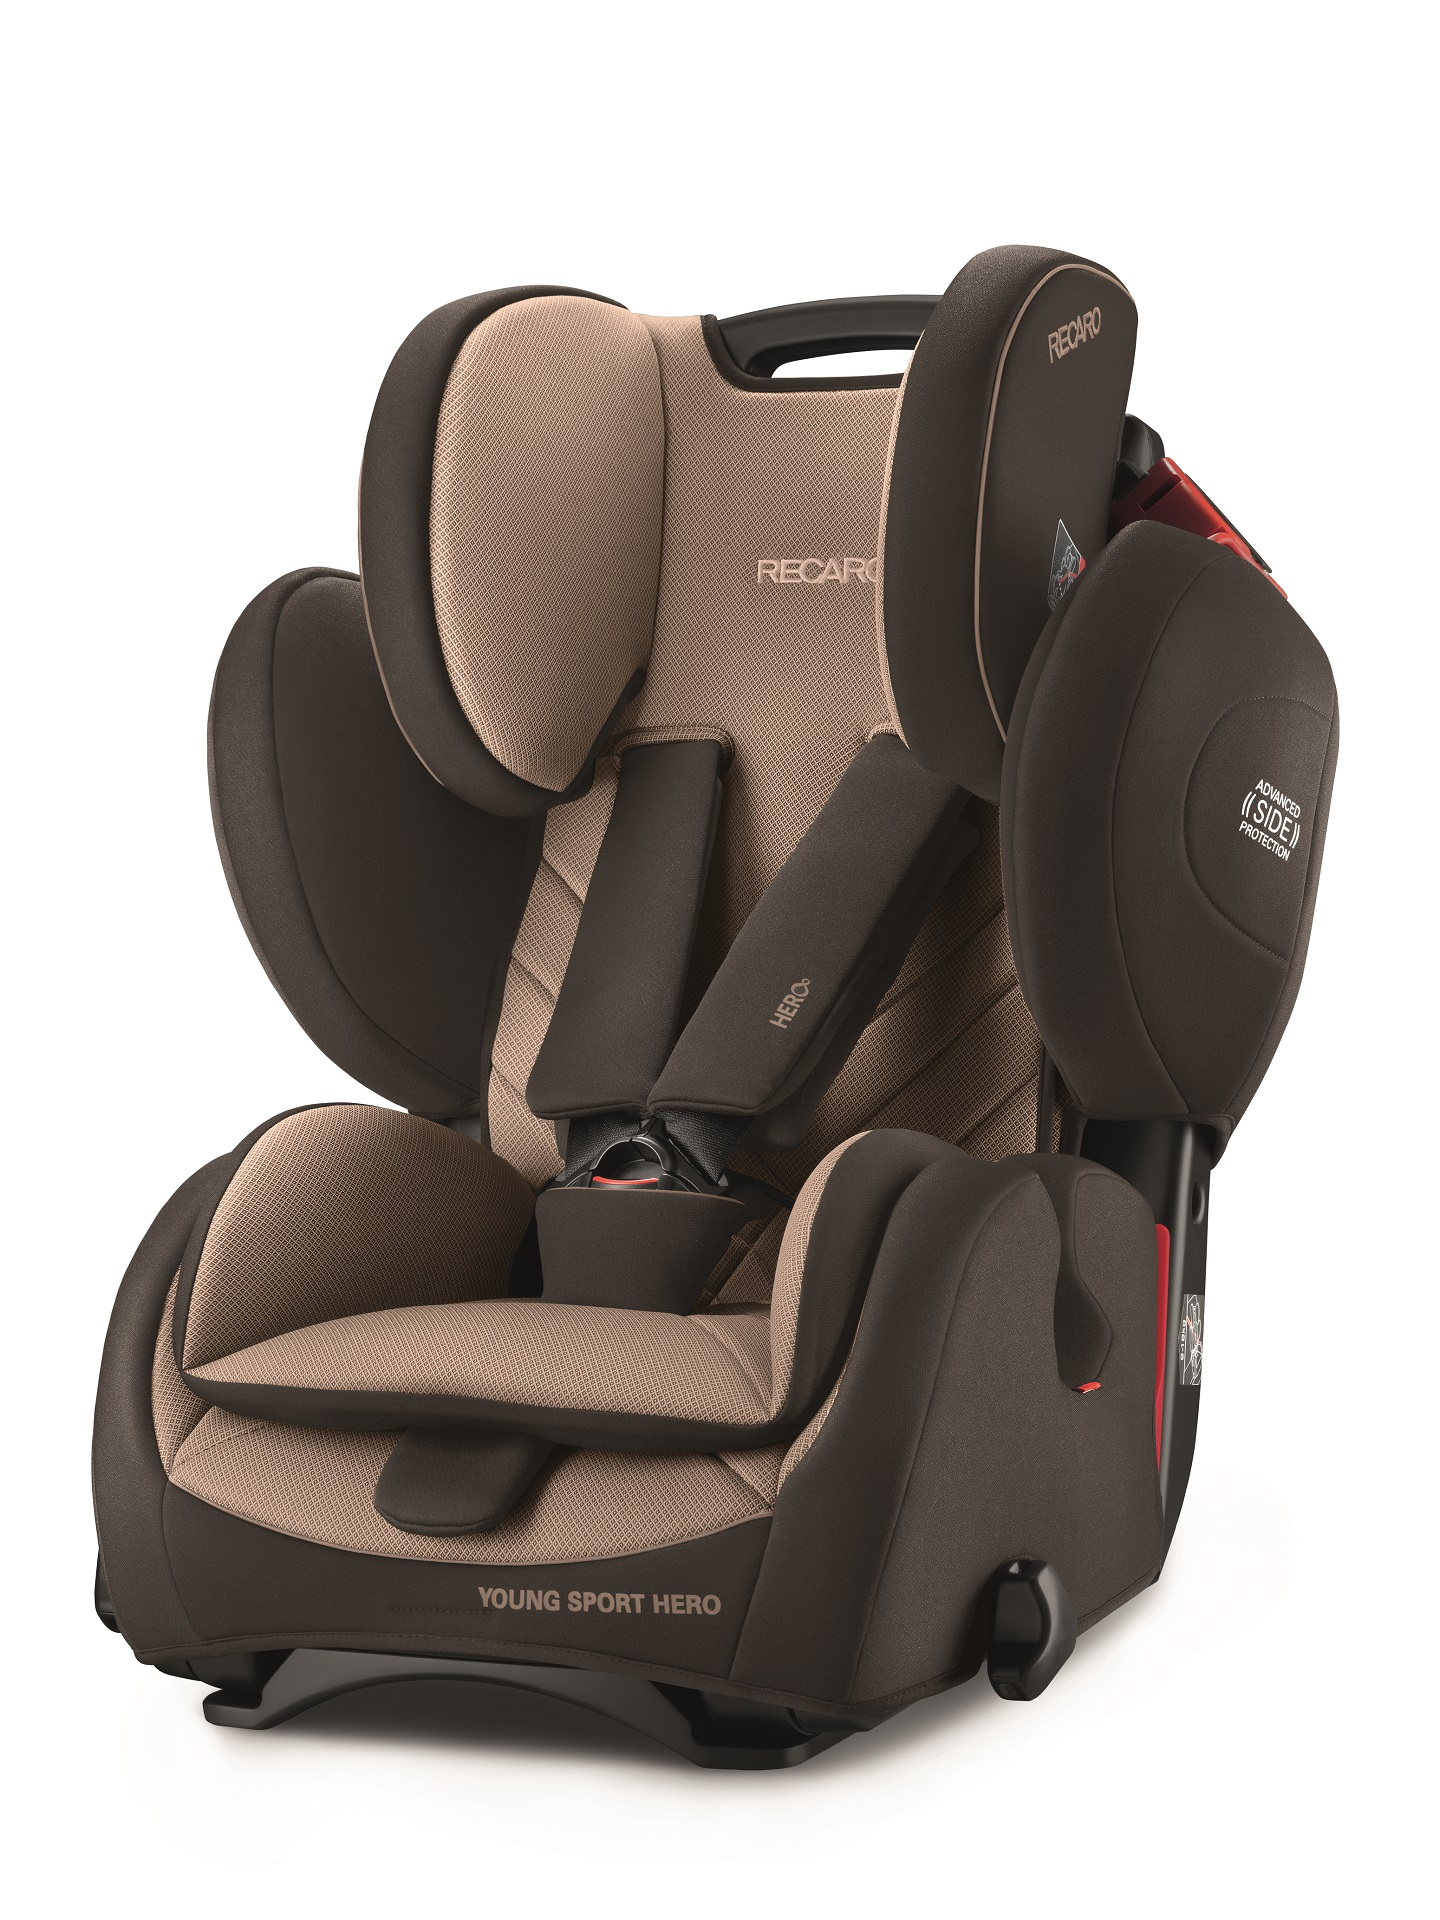 Si ge enfant young sport hero par recaro 2018 dakar sand for Siege enfant